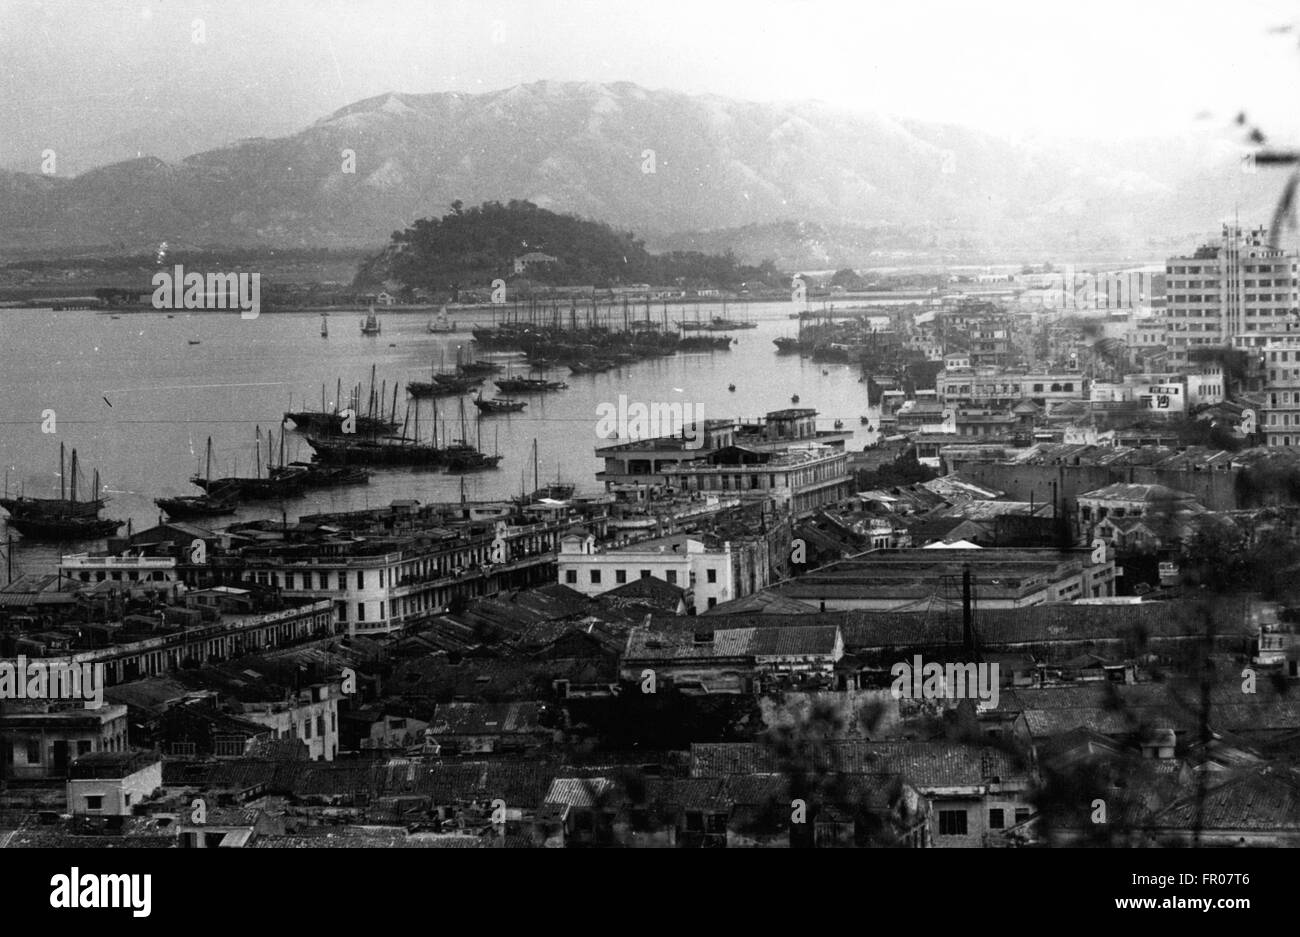 1962 - MACAO Inner Harbor © Keystone Pictures USA/ZUMAPRESS.com/Alamy Live News Stock Photo